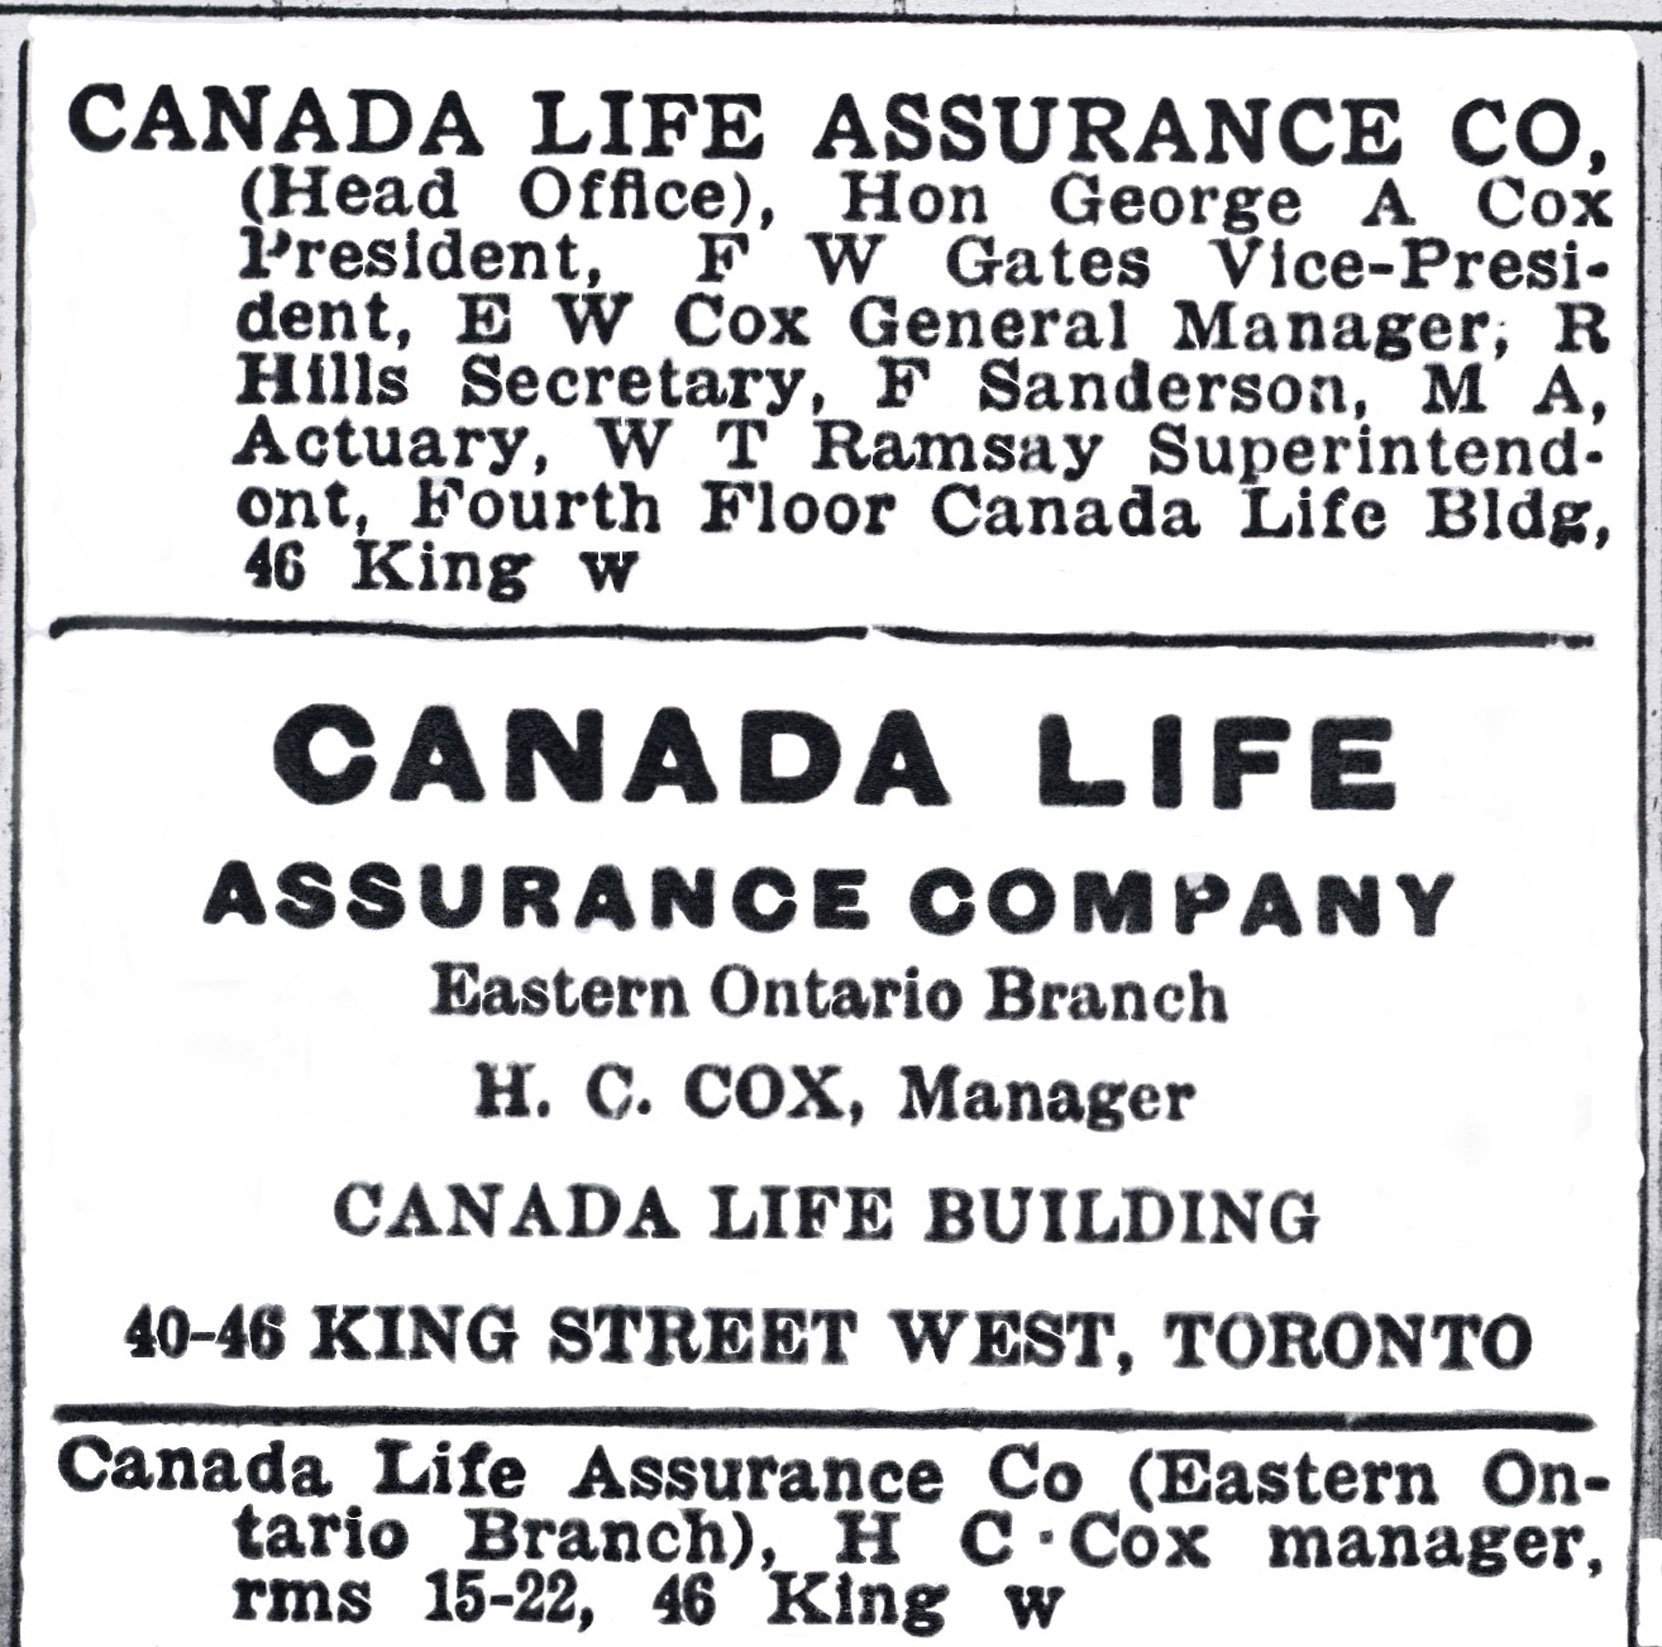 Canada Life Assurance Company advertisement, 1904, showing Senator George Albertus Cox as President (Author's collection)